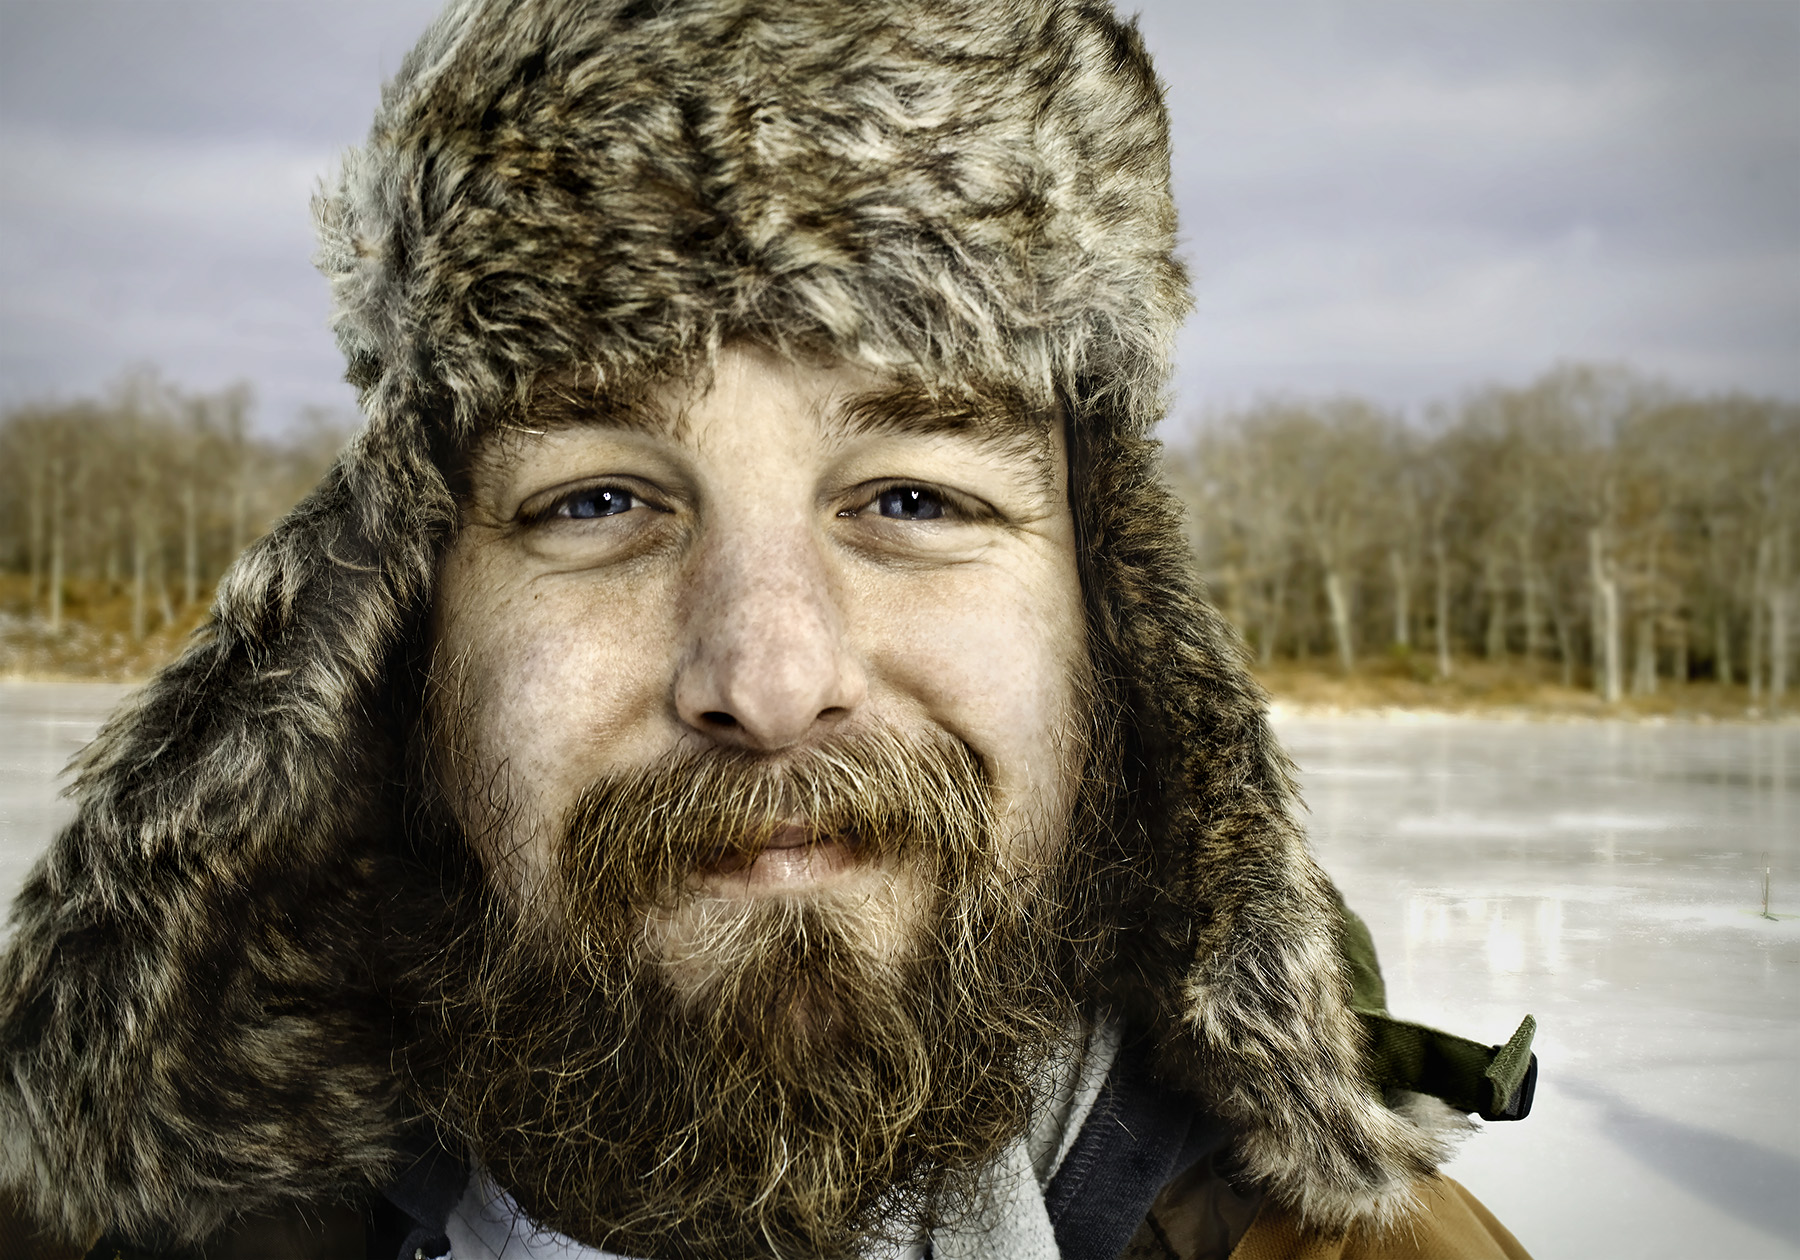 IceFisherman_Close_006226_V4_highpassbeard_1800